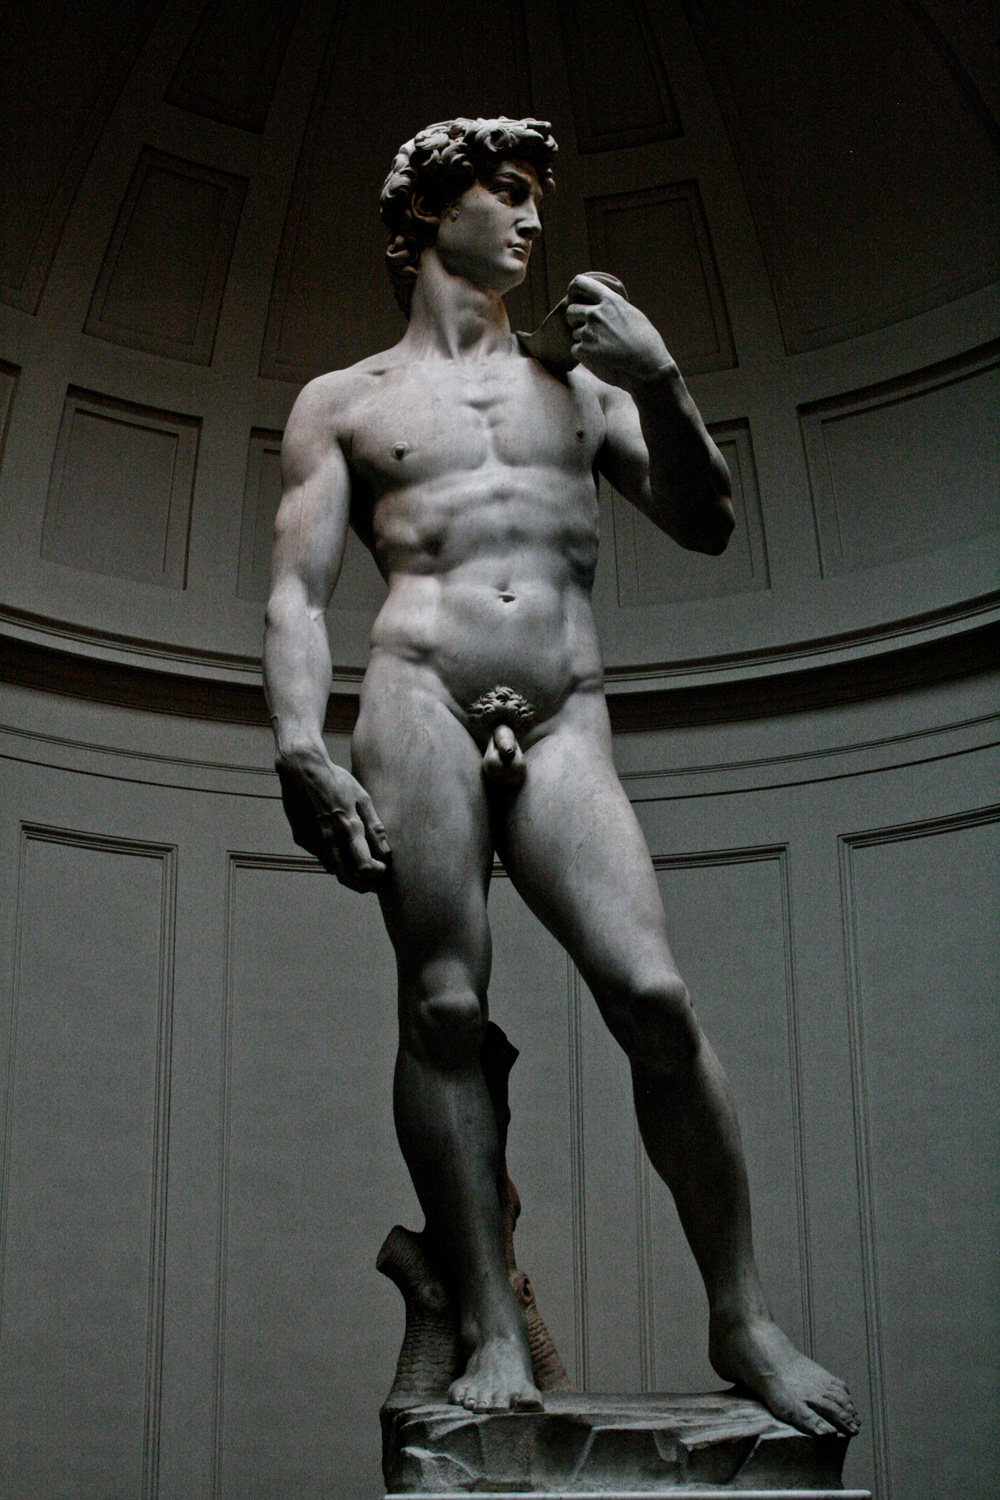 David (Florence, Italy)